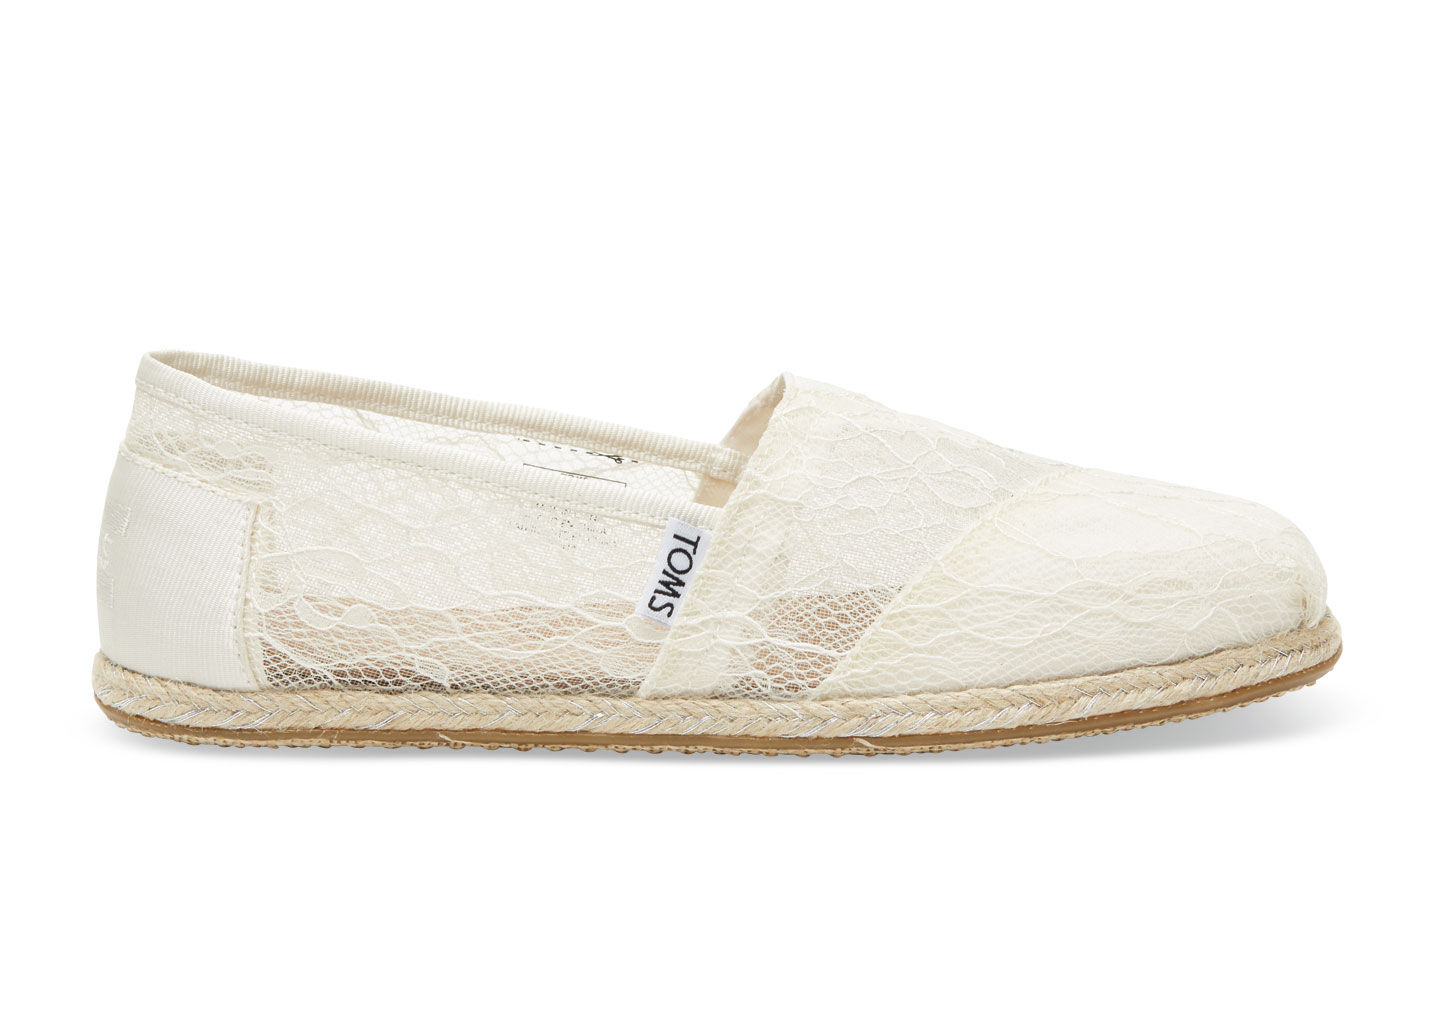 Toms White Lace Rope Shoes